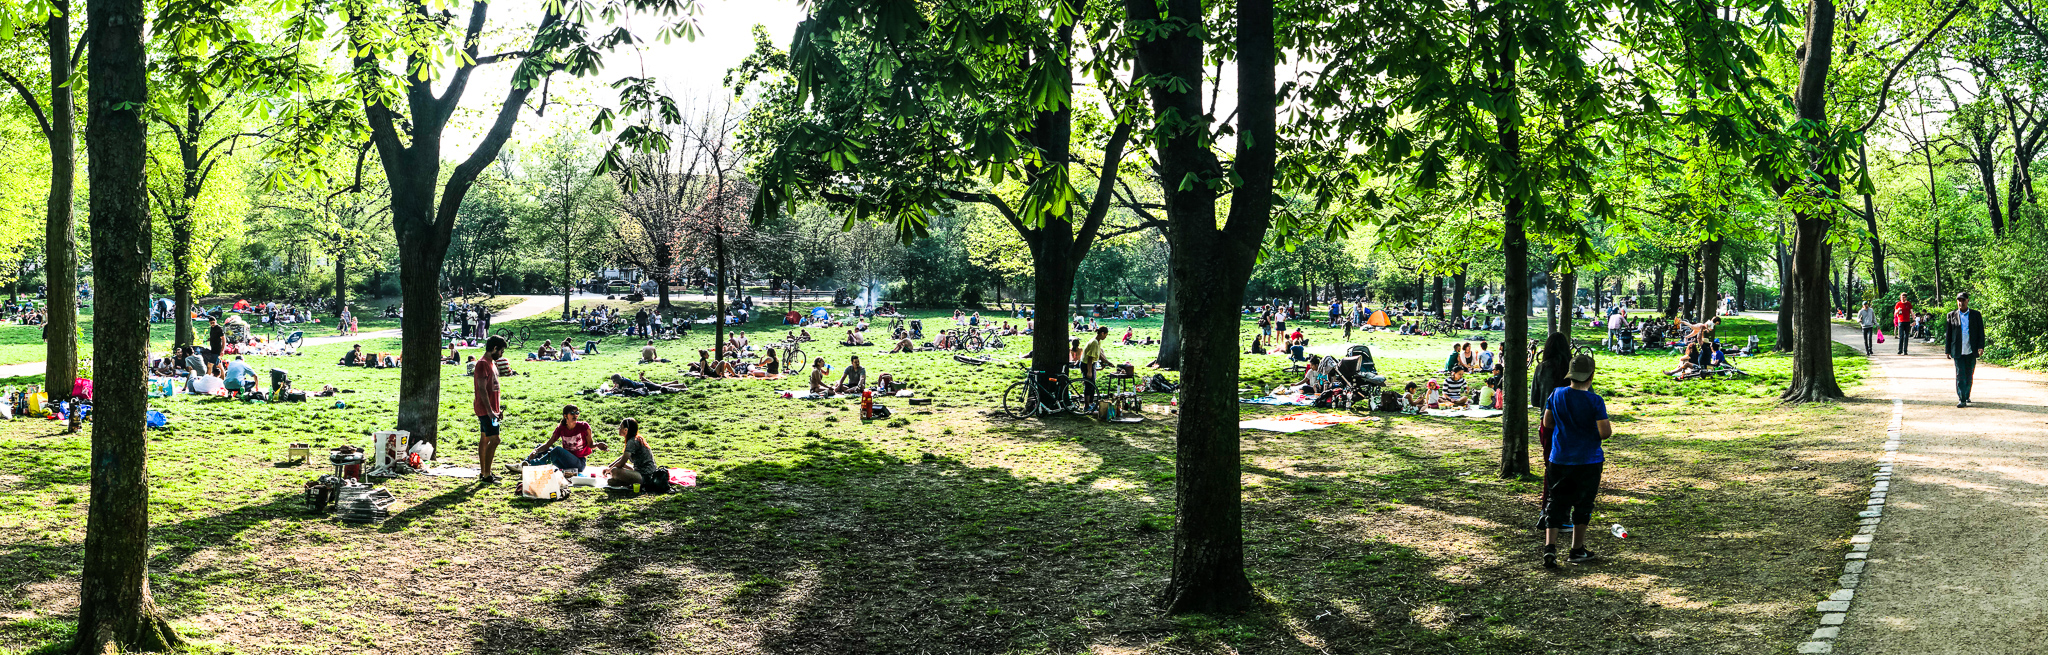 Relaxing in the sunshine at Volkspark, Friedrichshain